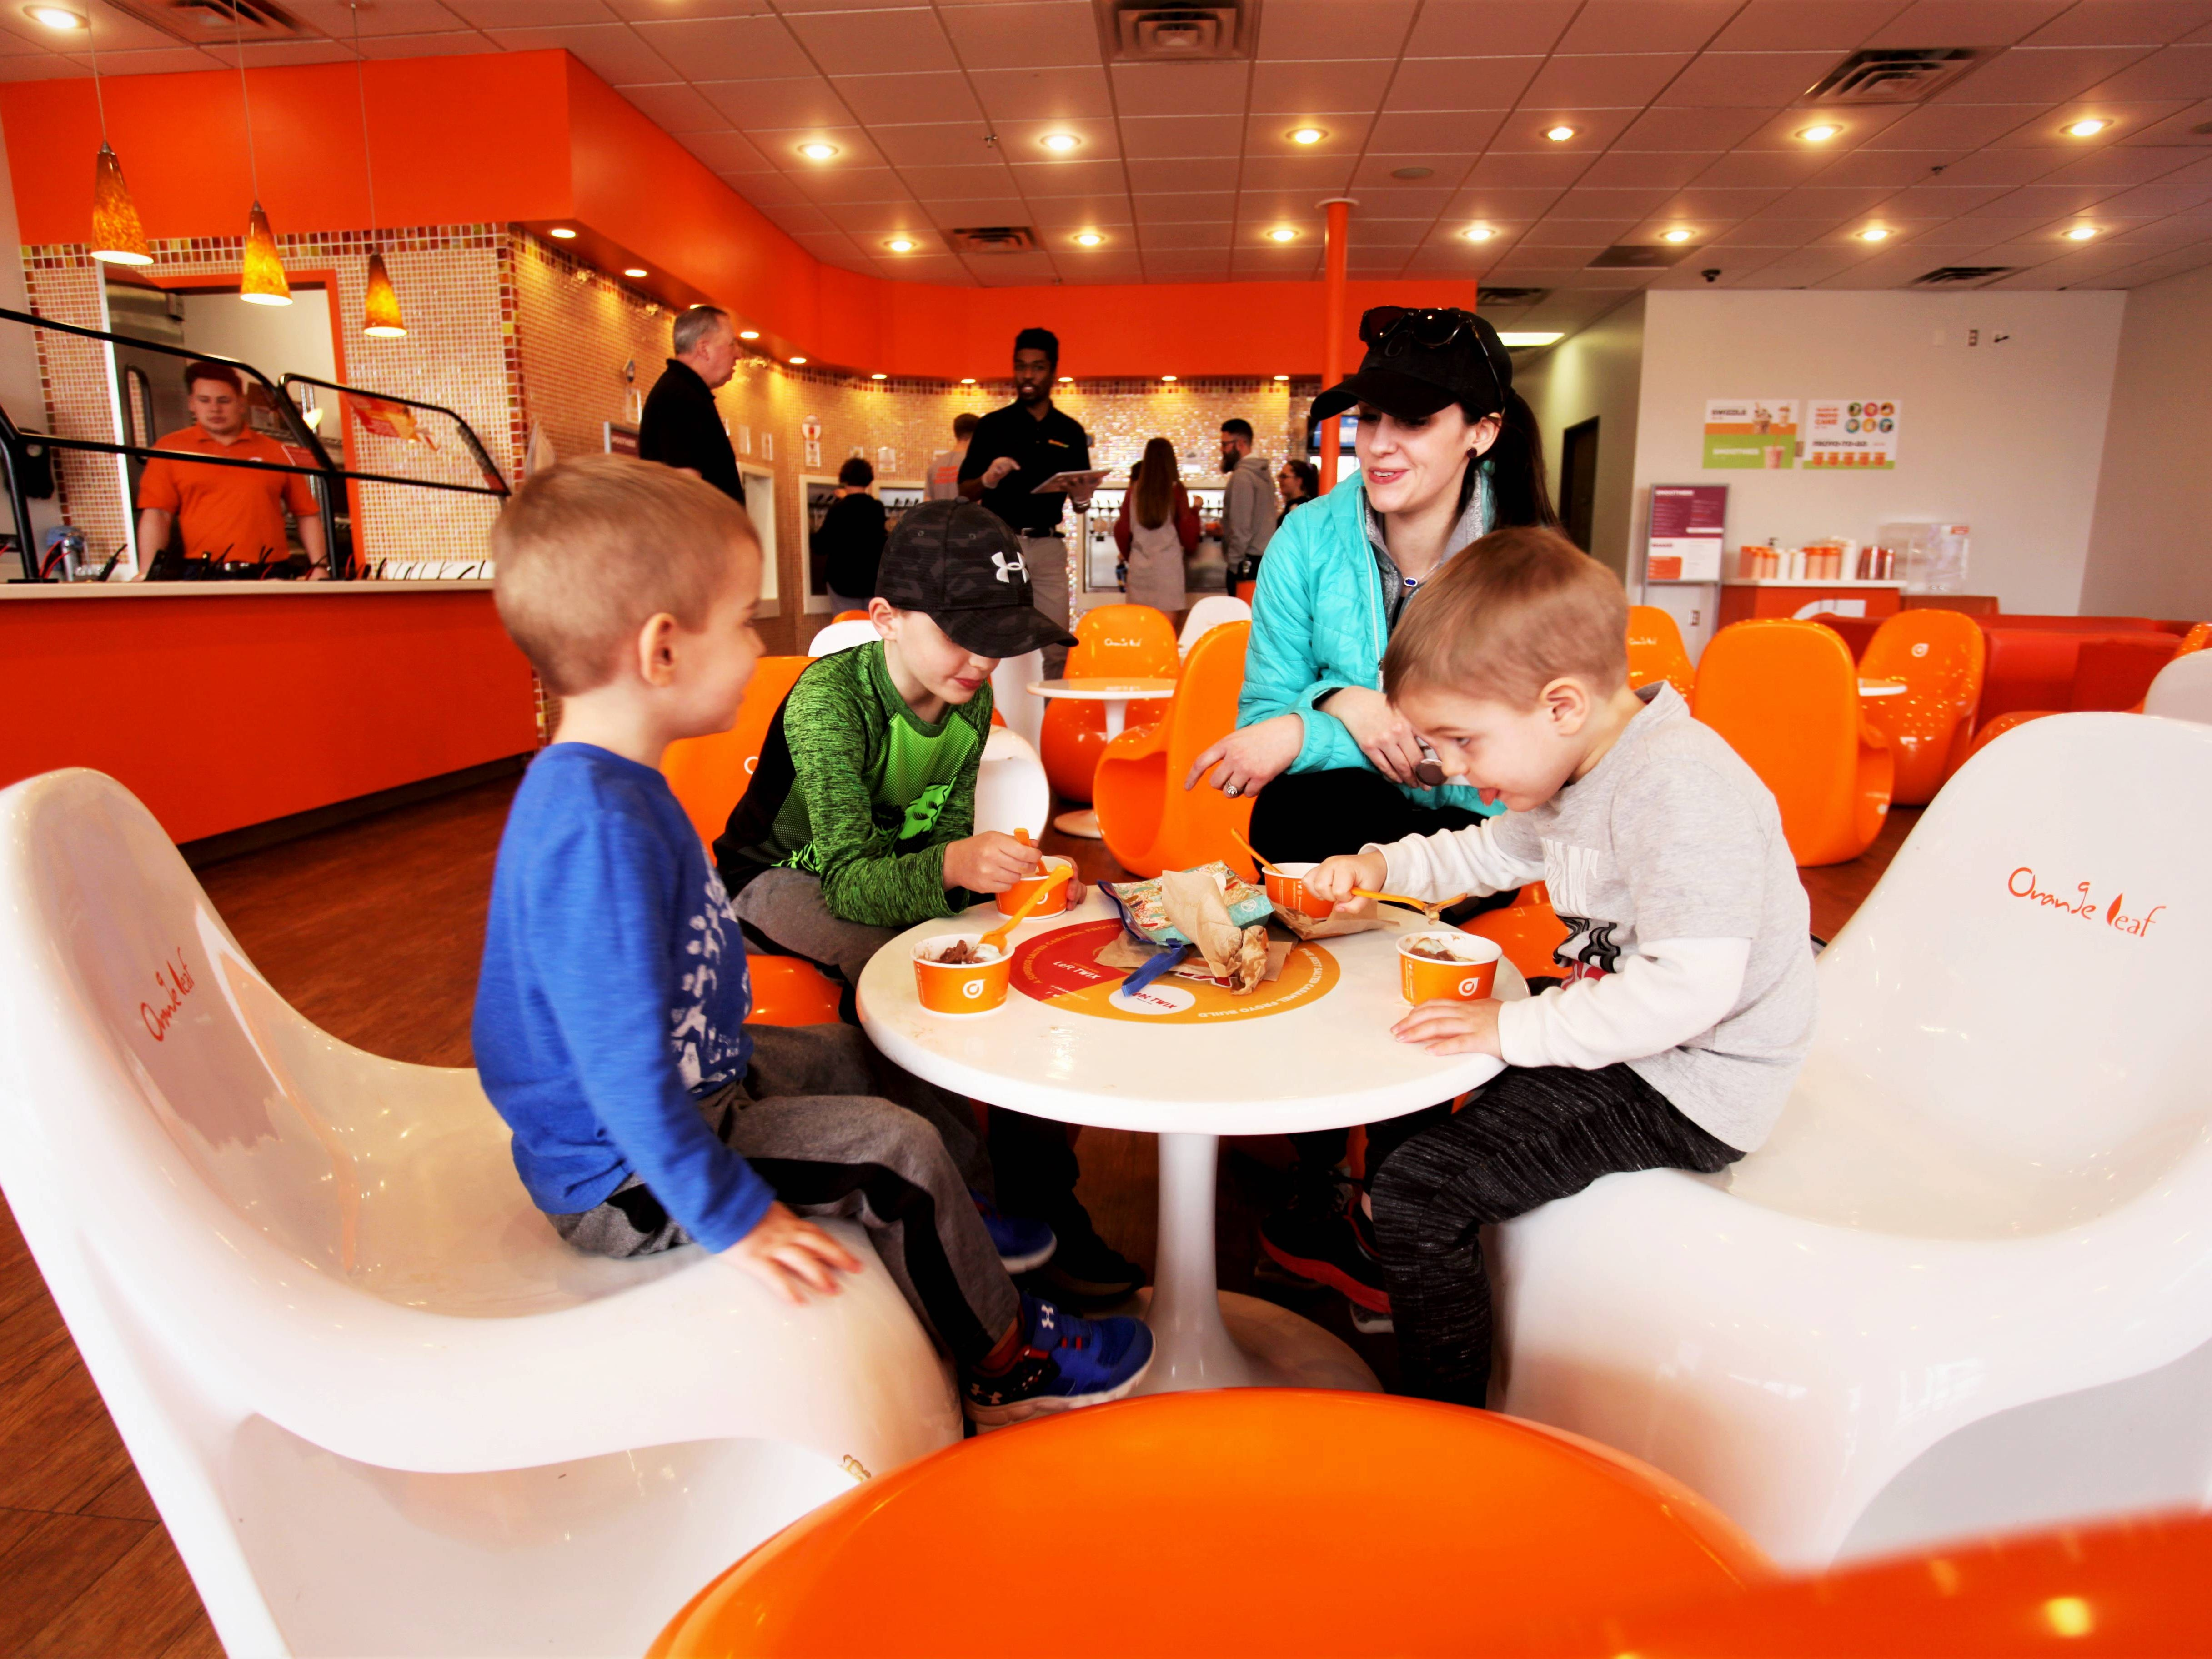 Two-year-old Elliot Colley, far left, eats frozen yogurt at Orange Leaf in Springfield with brothers Easton, 7, and Emerson, 4, while mother Rachel watches.